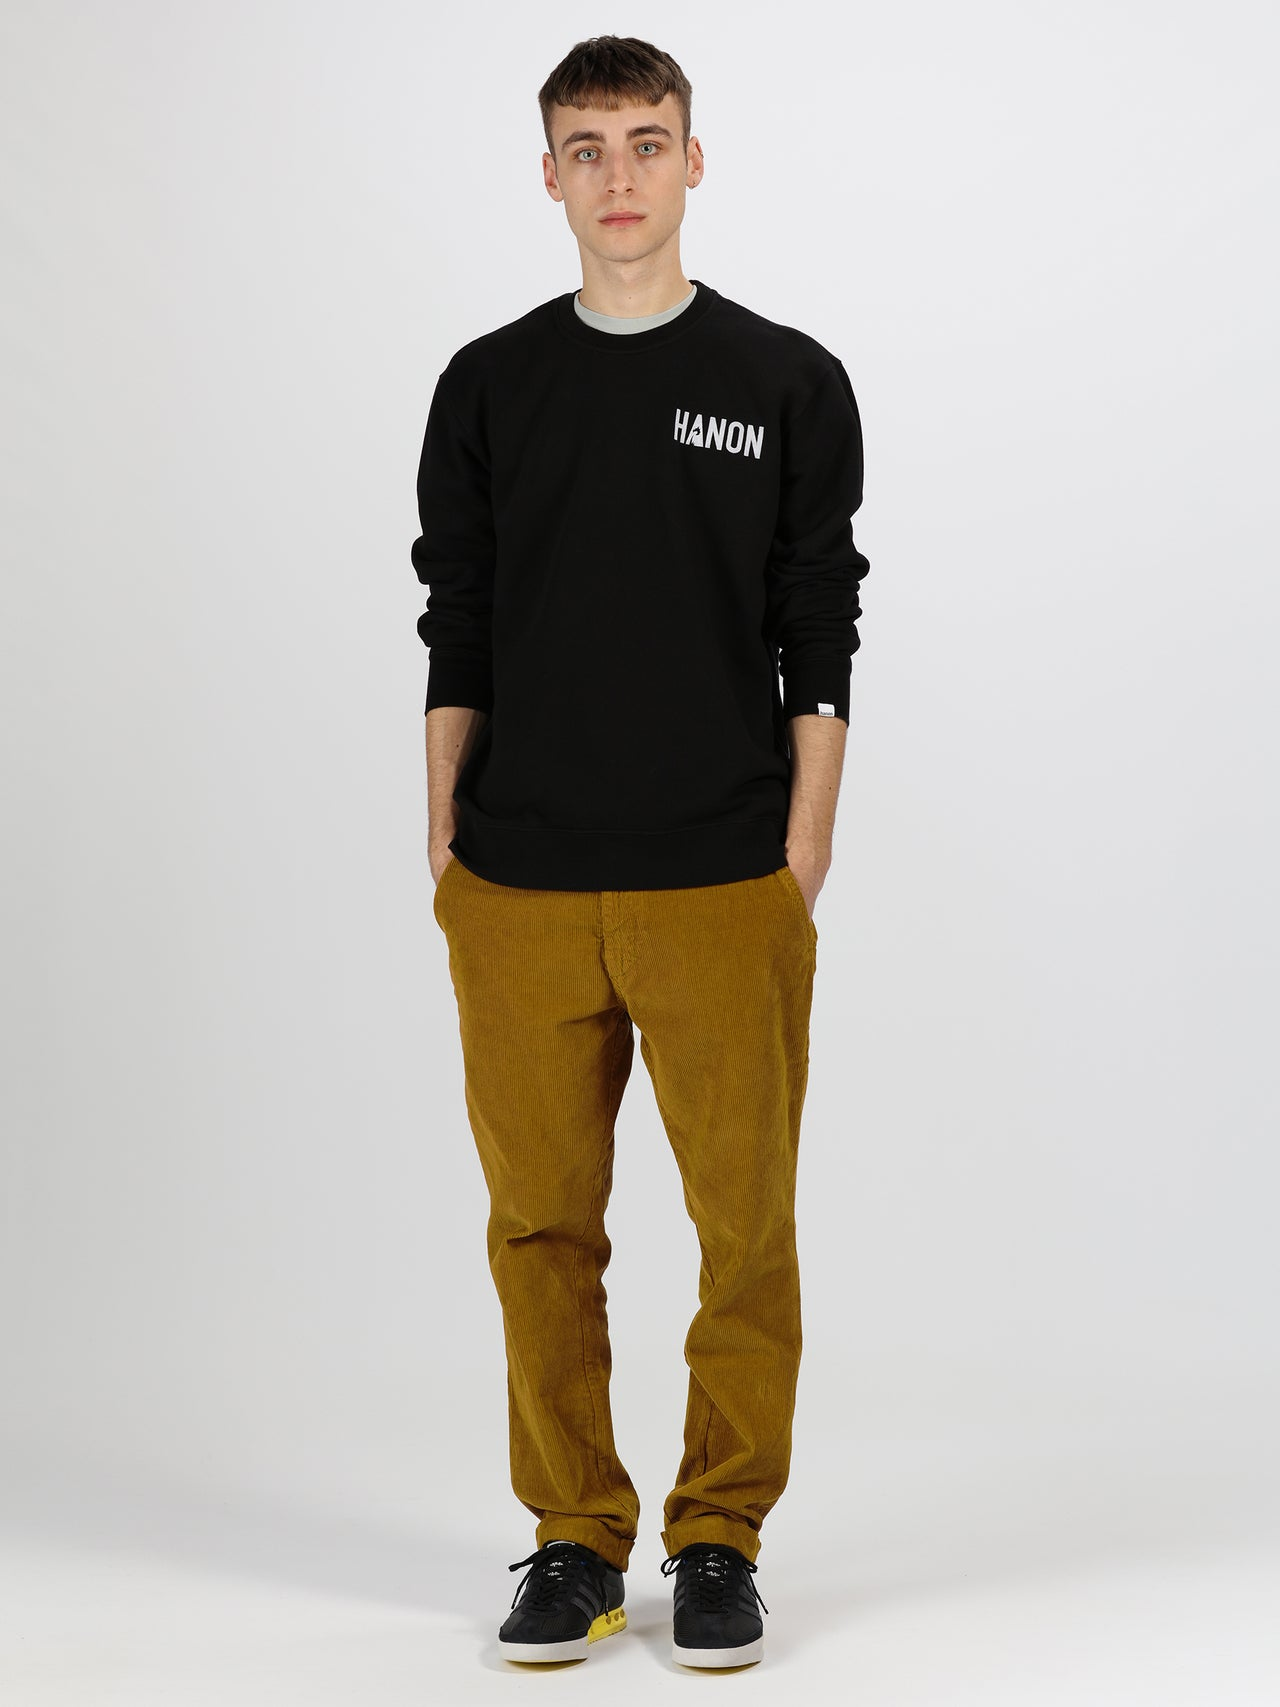 Hanon Burning Palm Flock Sweatshirt